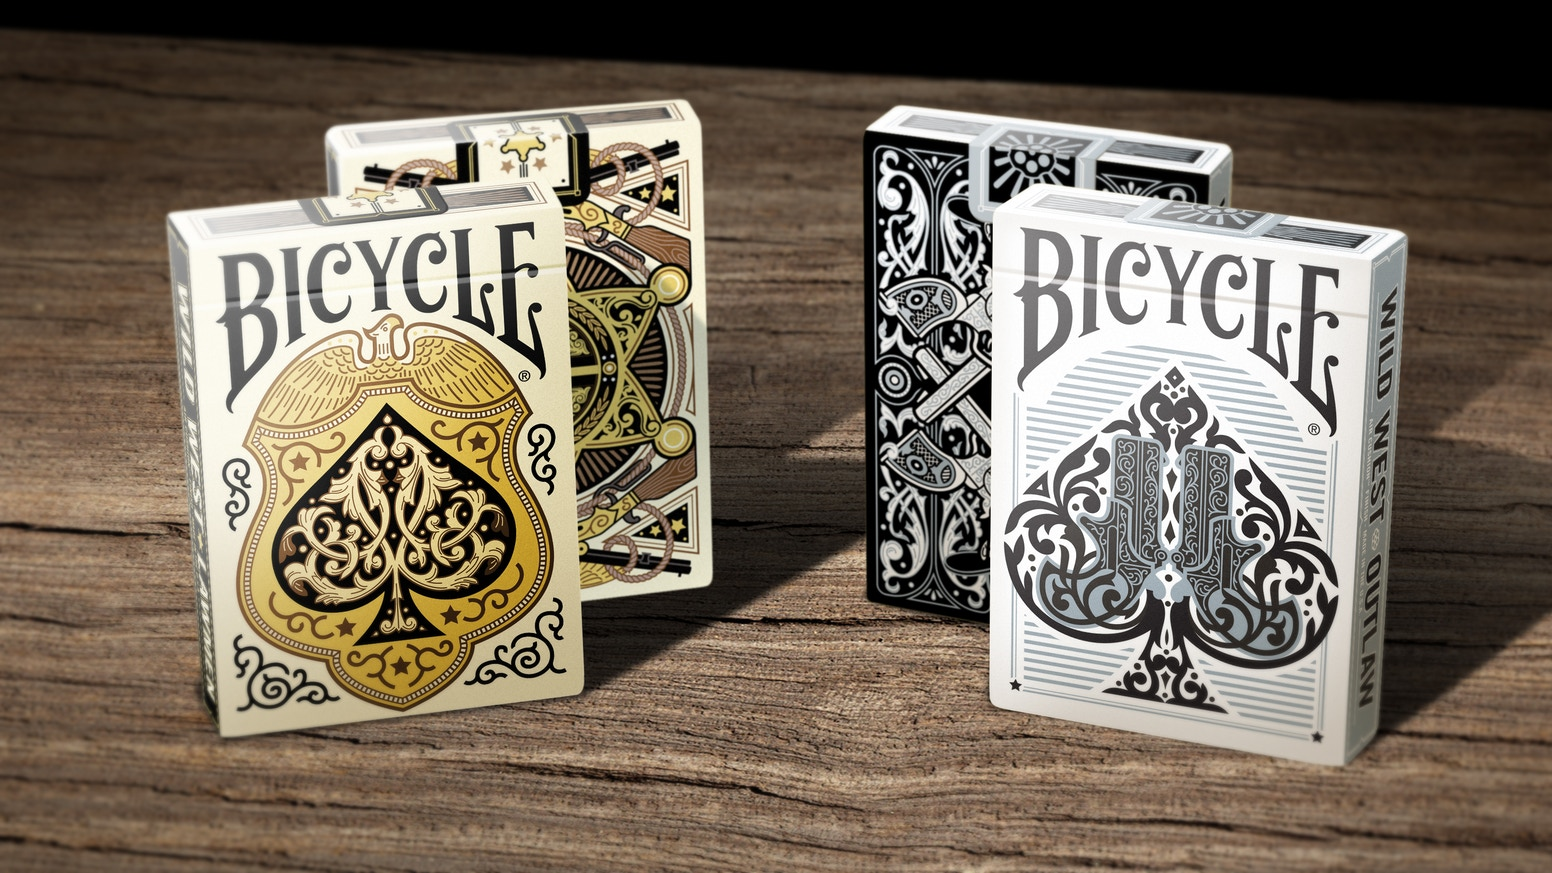 Bicycle Wild West Playing Cards. Each court card depicts a Wild West historic character such as Billy the Kid, Wyatt Earp and more.